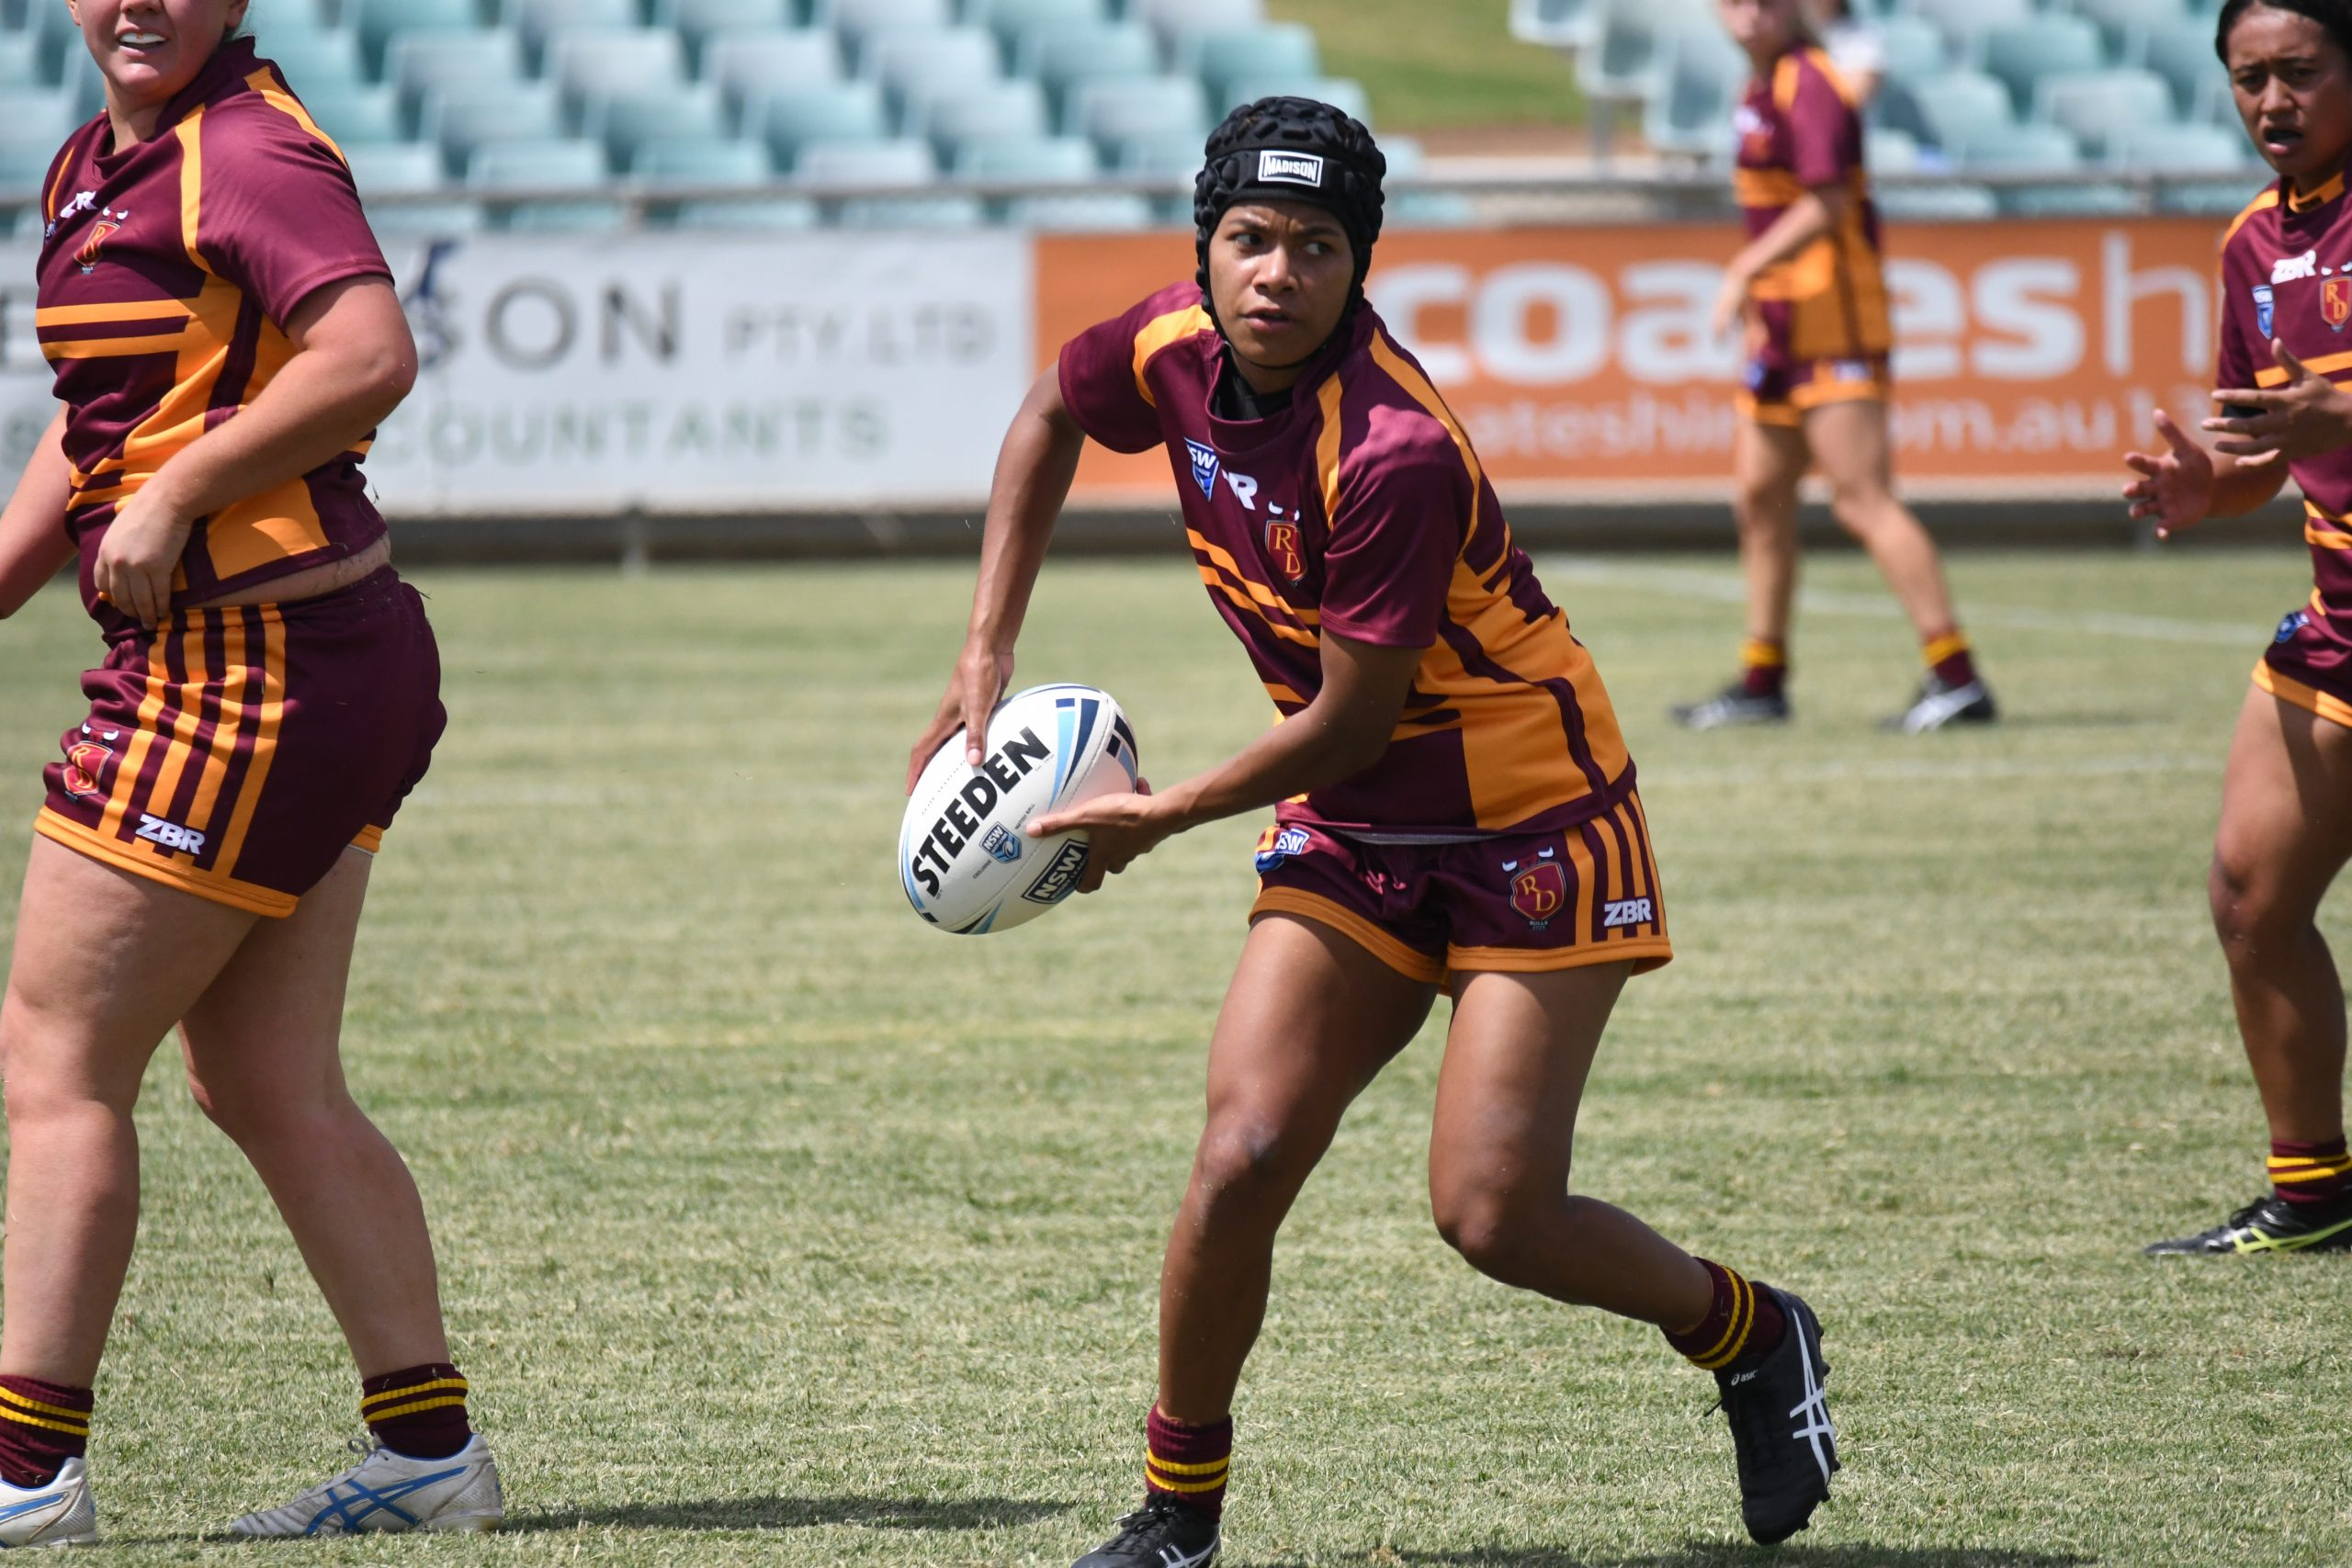 Riverina Bulls bank on stars to help defend title in Grand Final